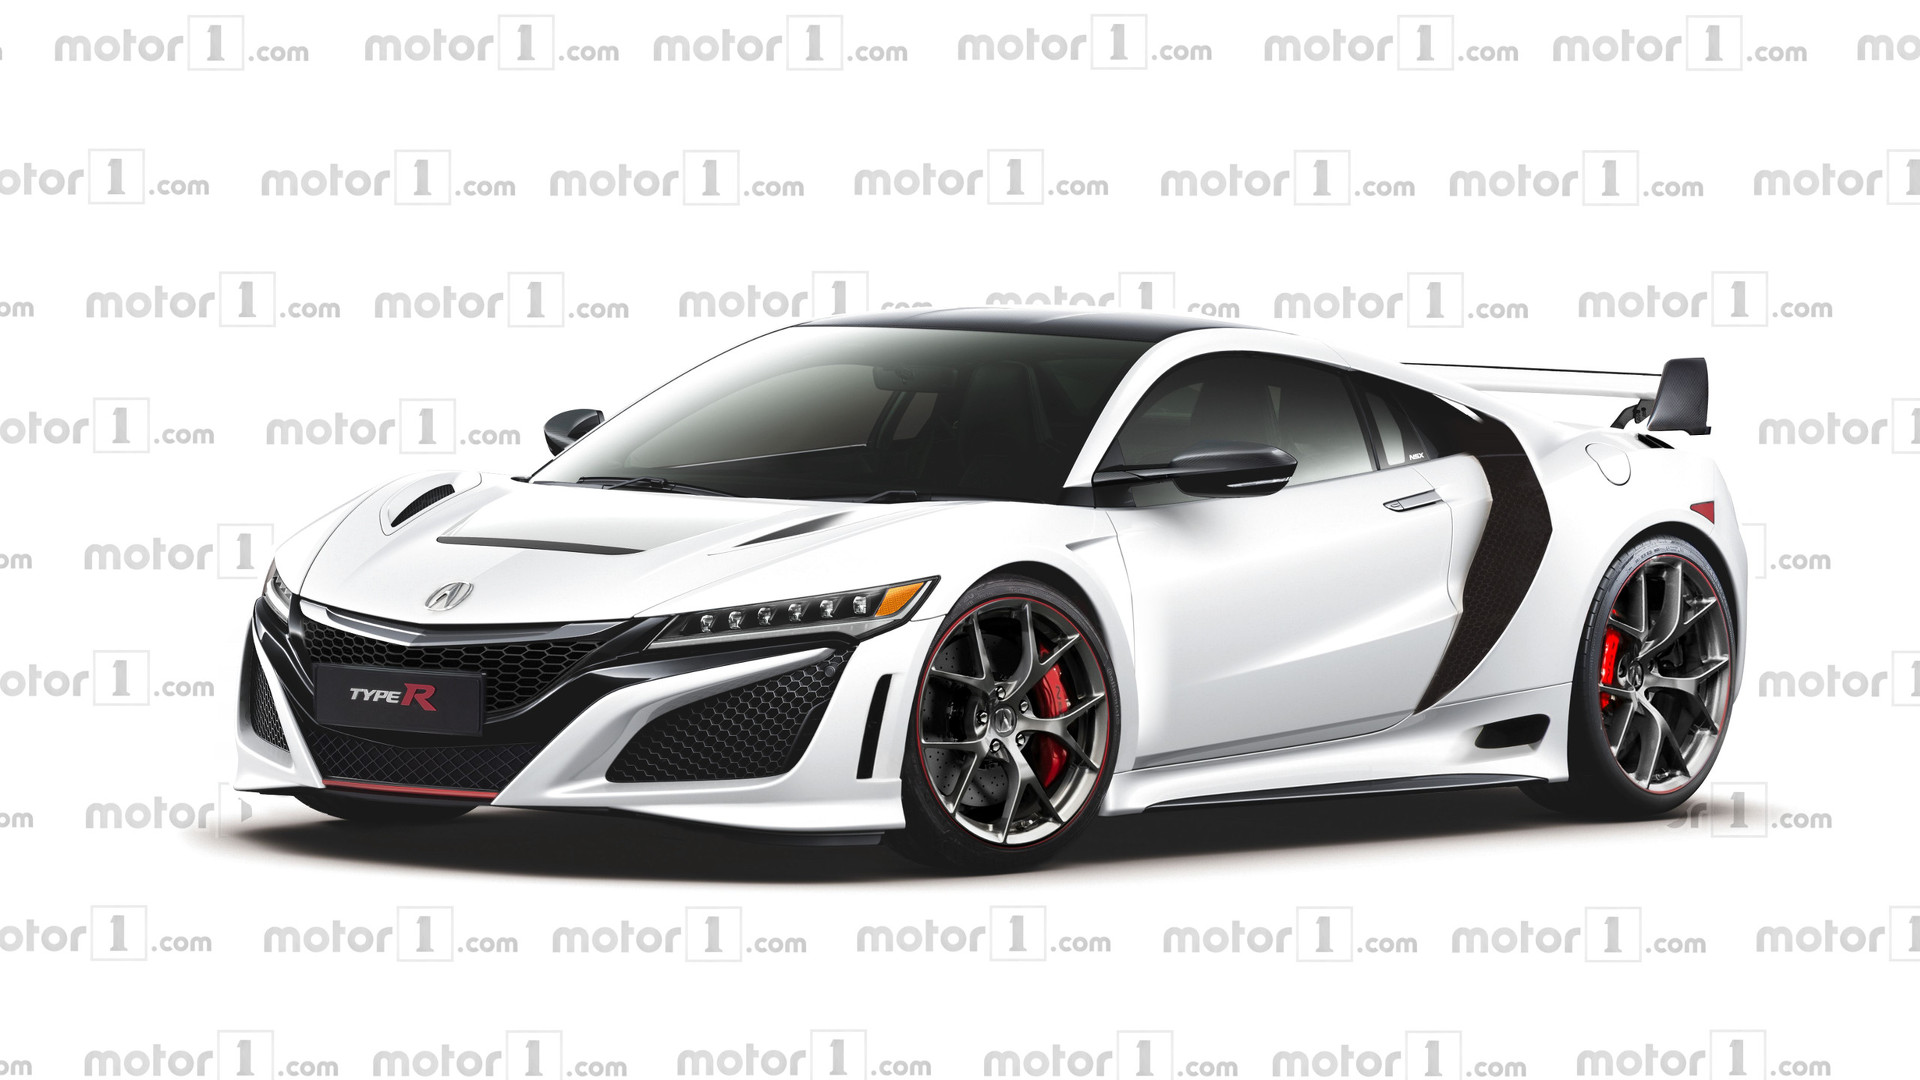 92 All New 2020 Acura Nsx Type R Release